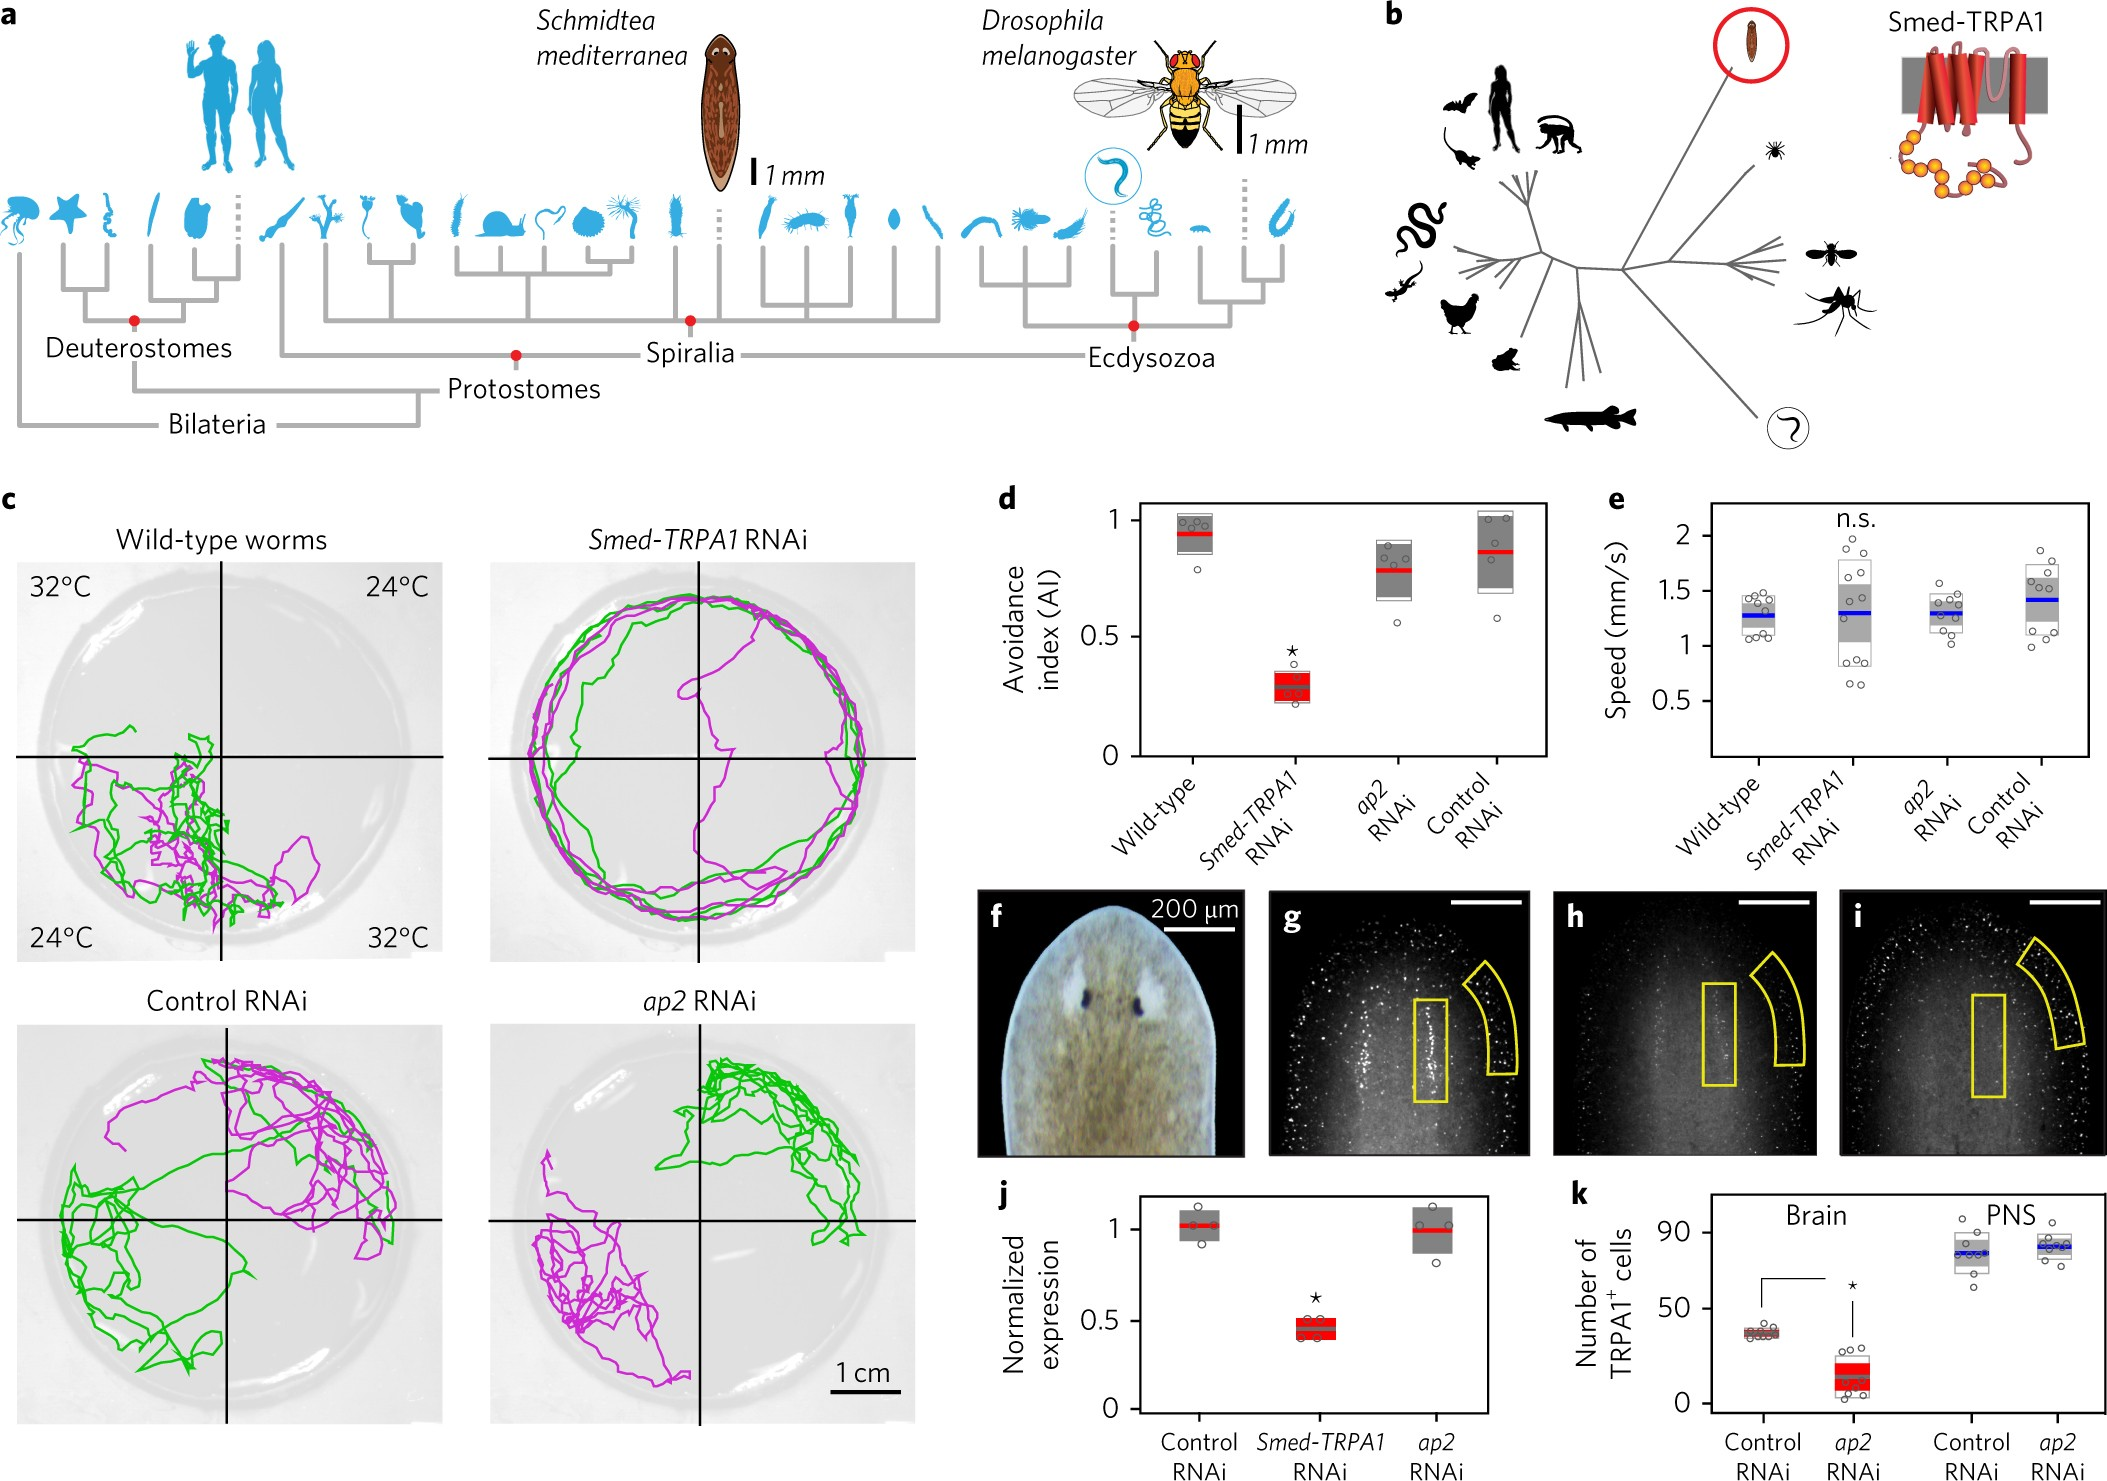 activation of planarian trpa1 by reactive oxygen species reveals a  conserved mechanism for animal nociception | nature neuroscience